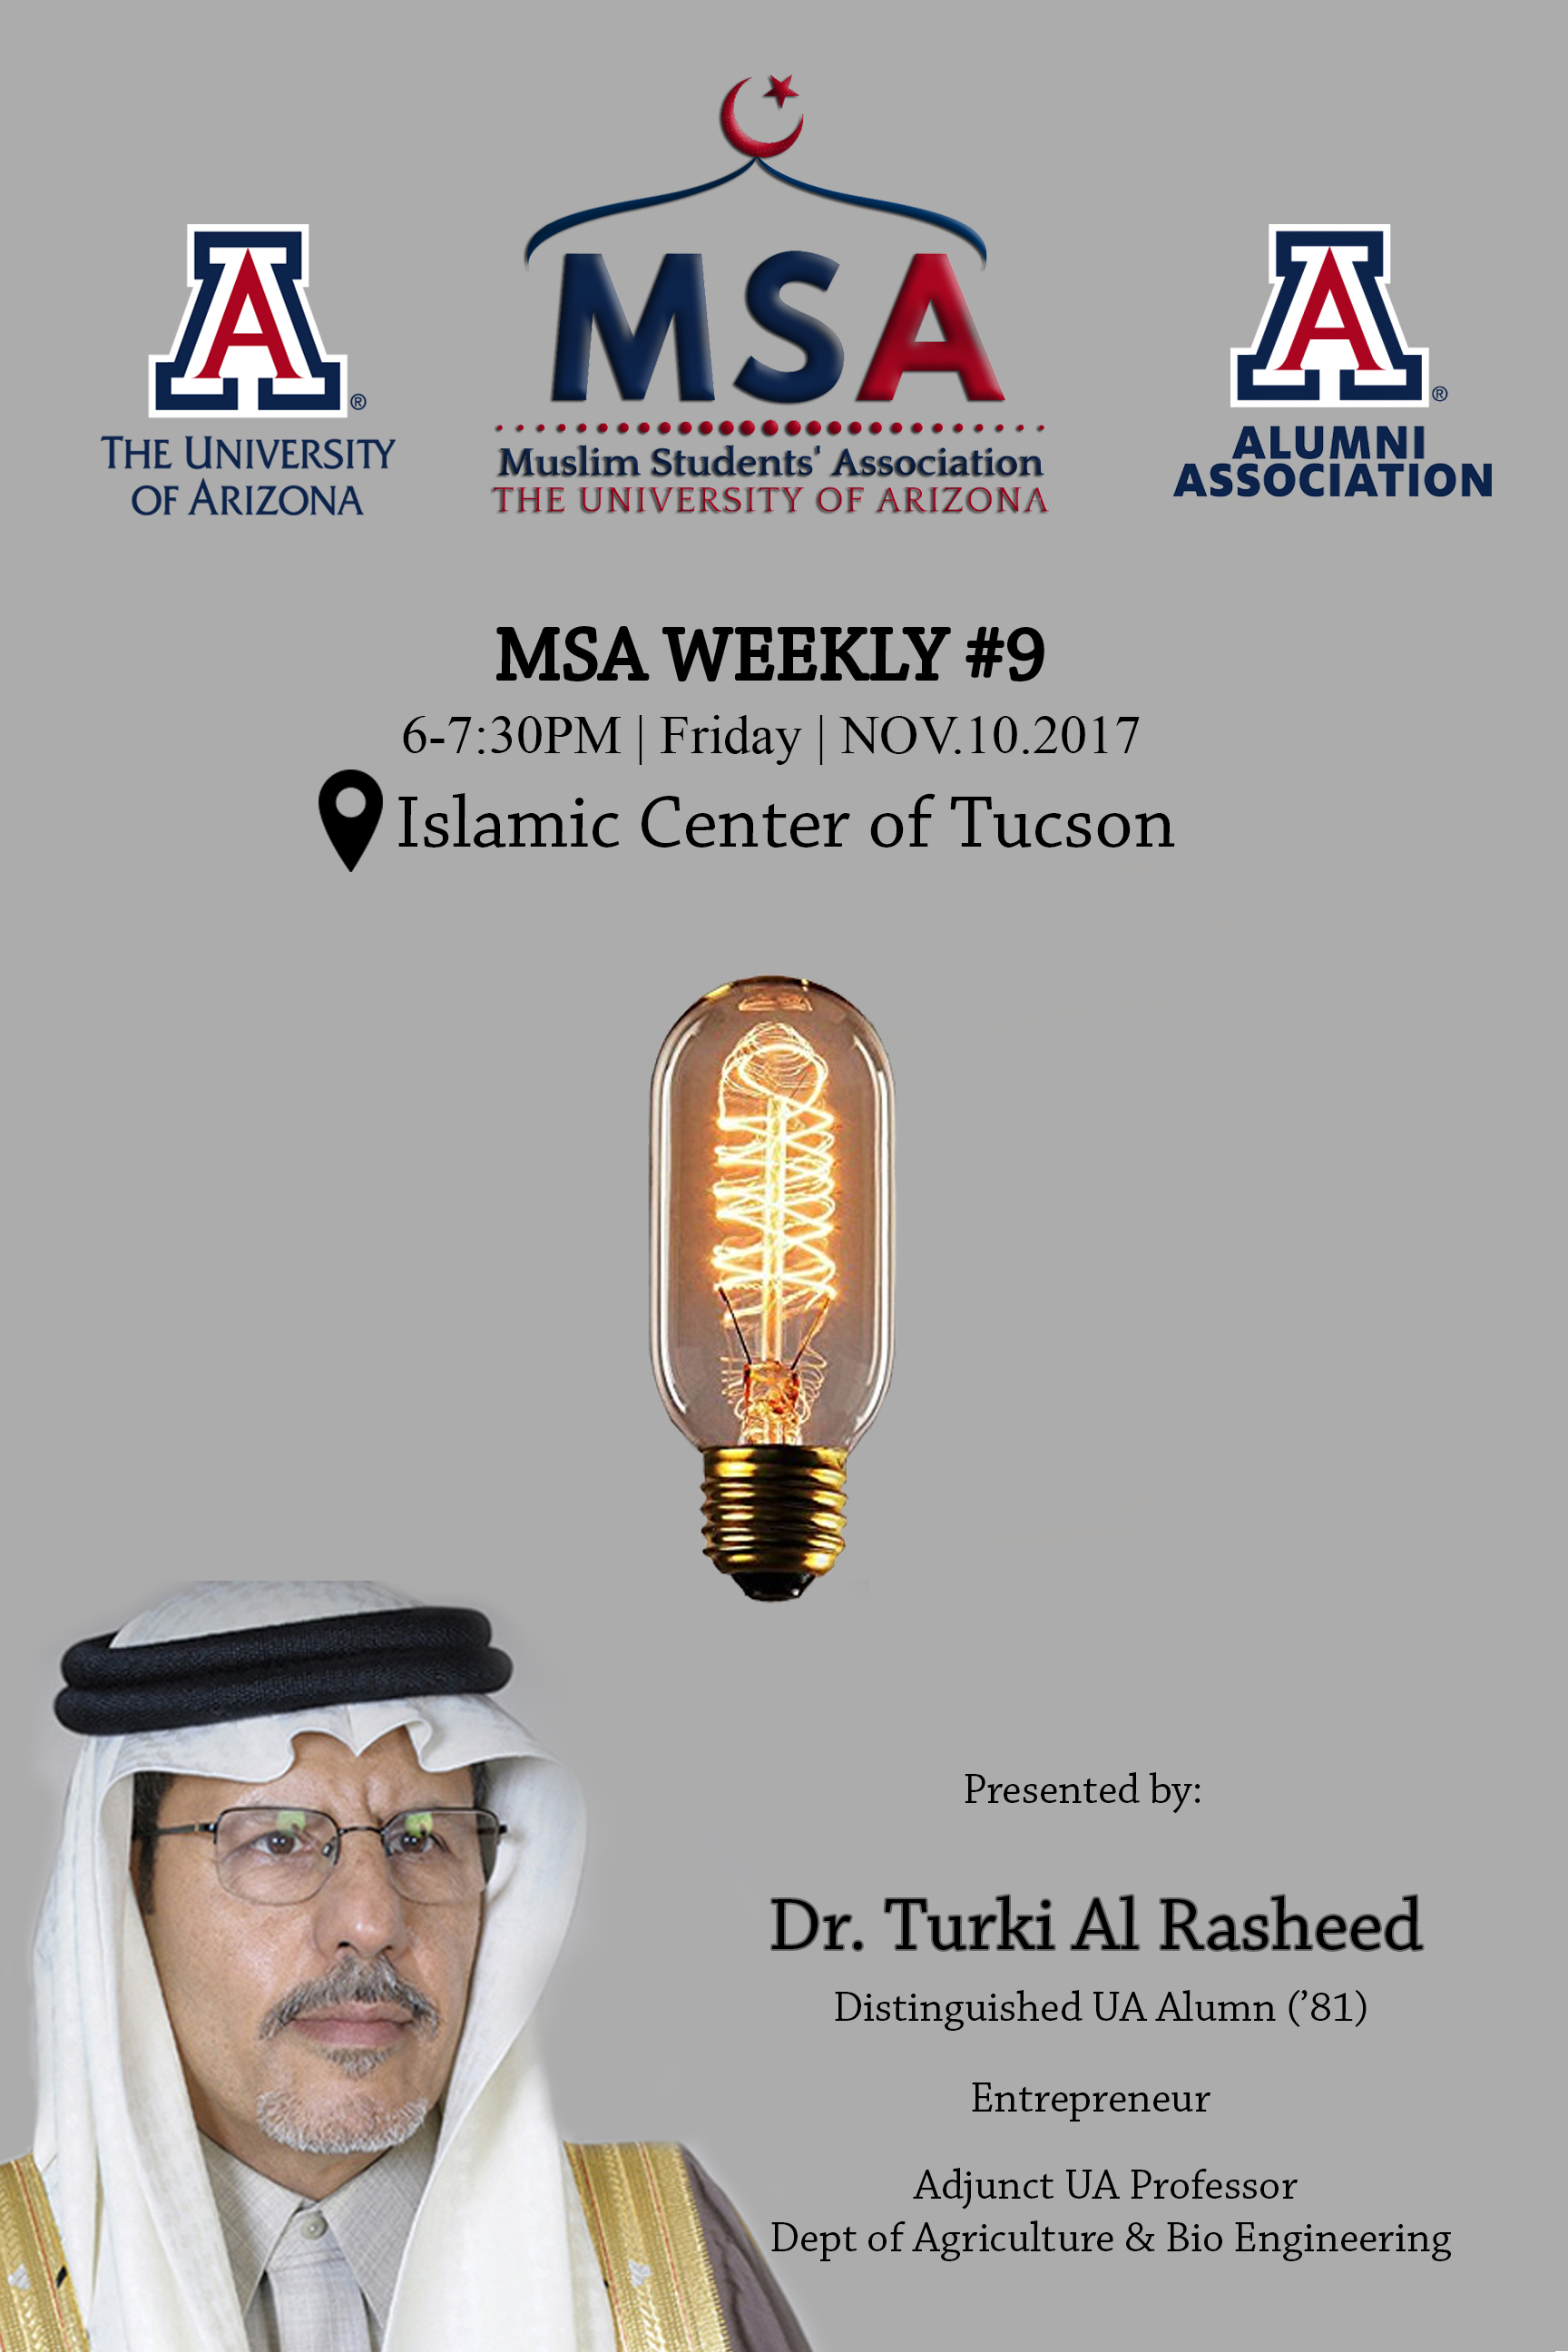 MSA Weekly 9 - Dr. Turki Alrasheed